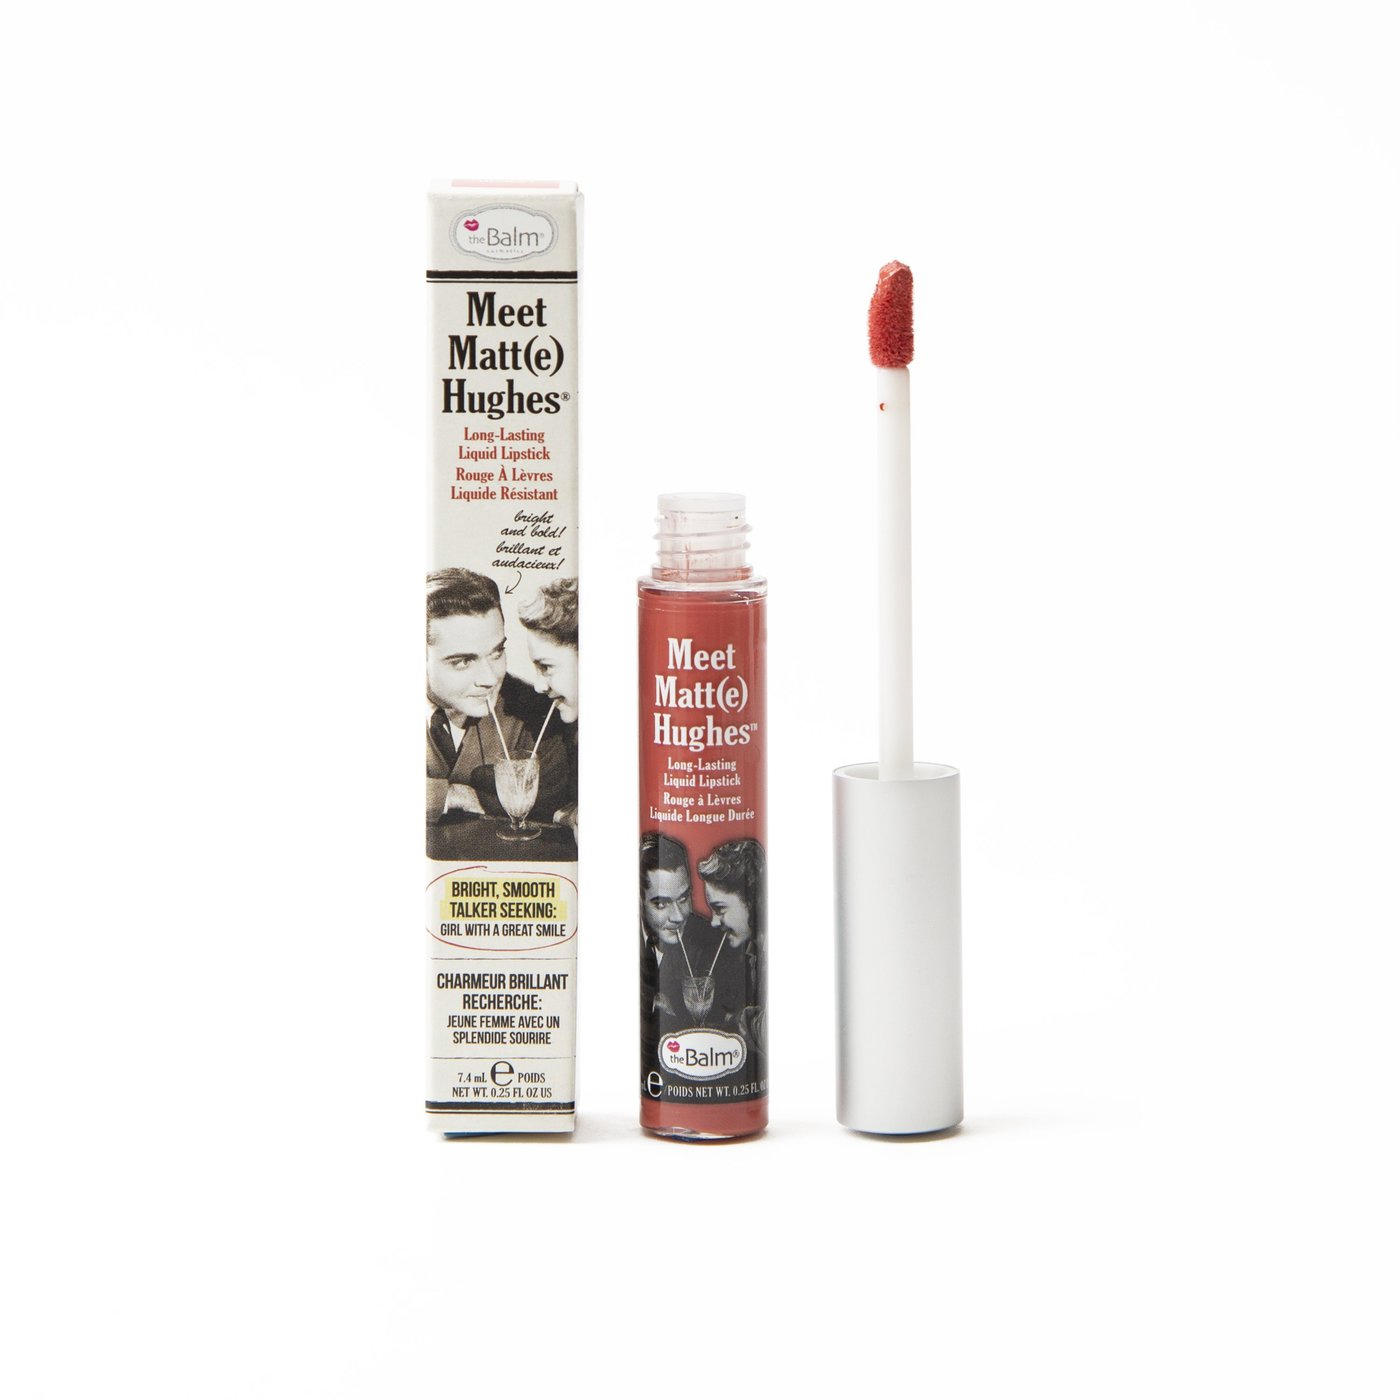 The Balm Meet Matt(e) Hughes Liquid Lipstick Honest